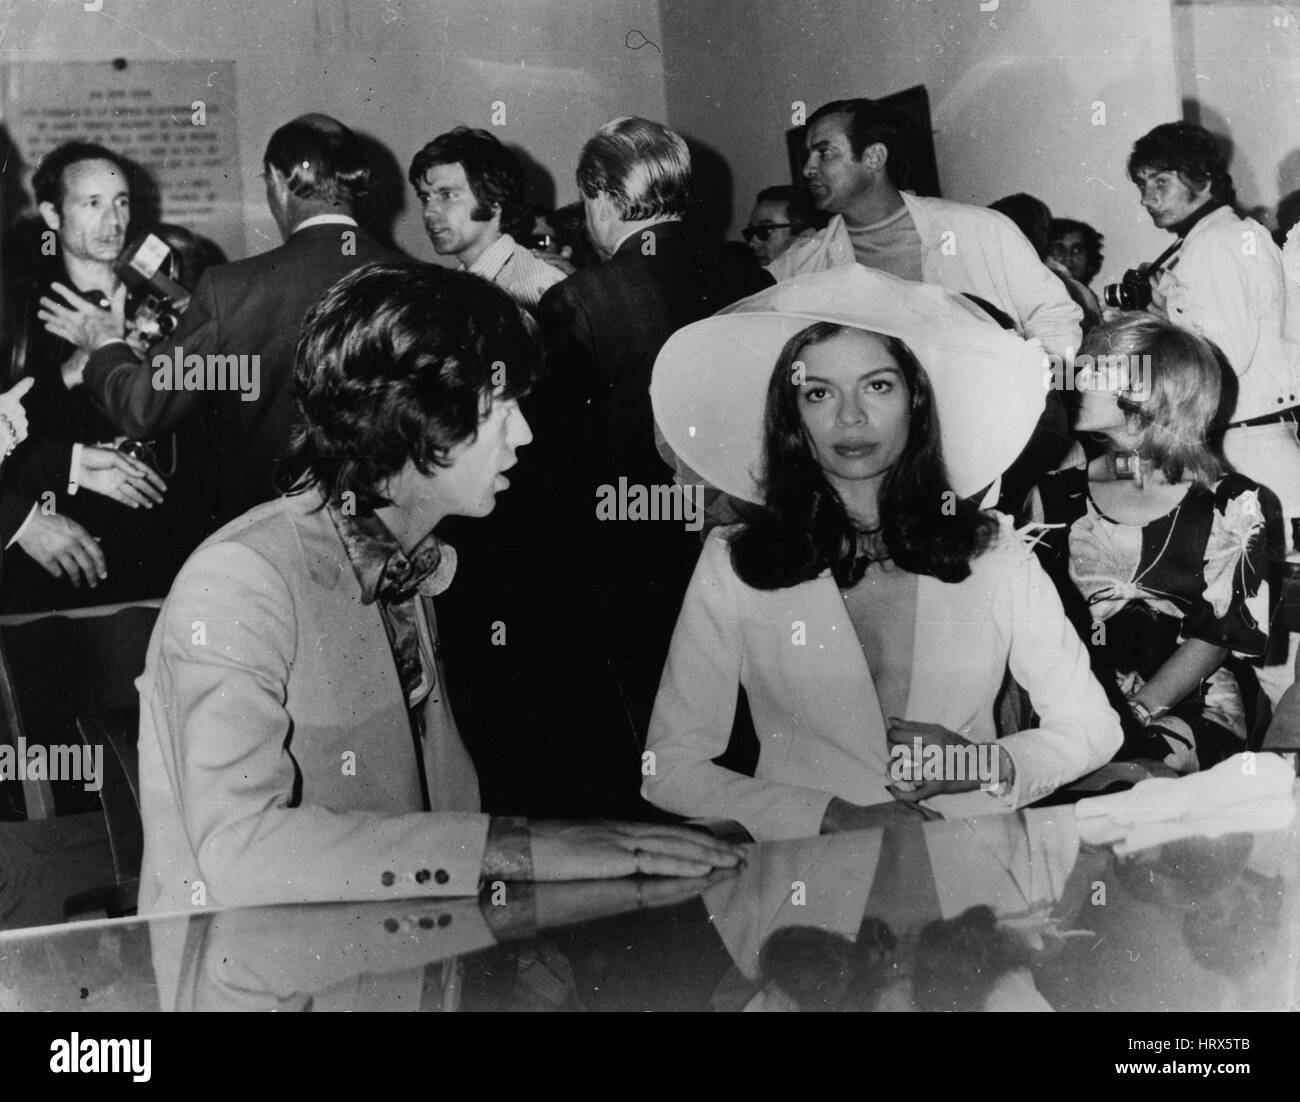 May 05, 1971 - A complete uproar at Jagger's wedding in St. Tropez: Mick Jagger of the Rolling Stones was married - Stock Image